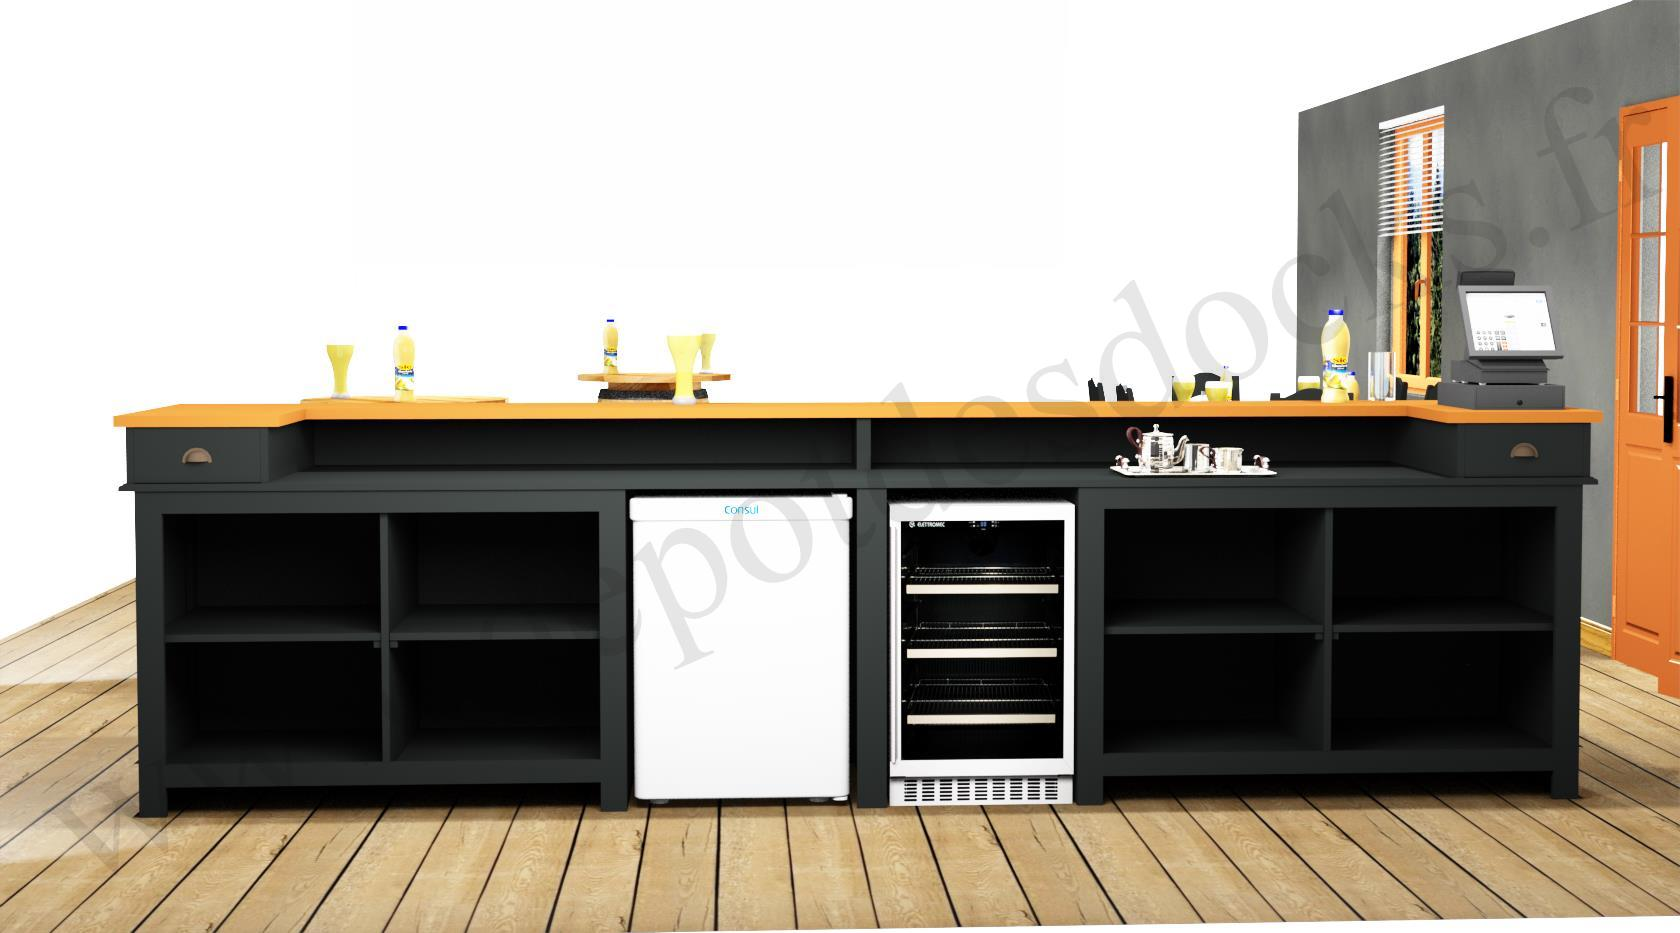 Comptoir De Bar Professionnel 4m00 Renovation Incluse Occasion 6 850 00 Ht